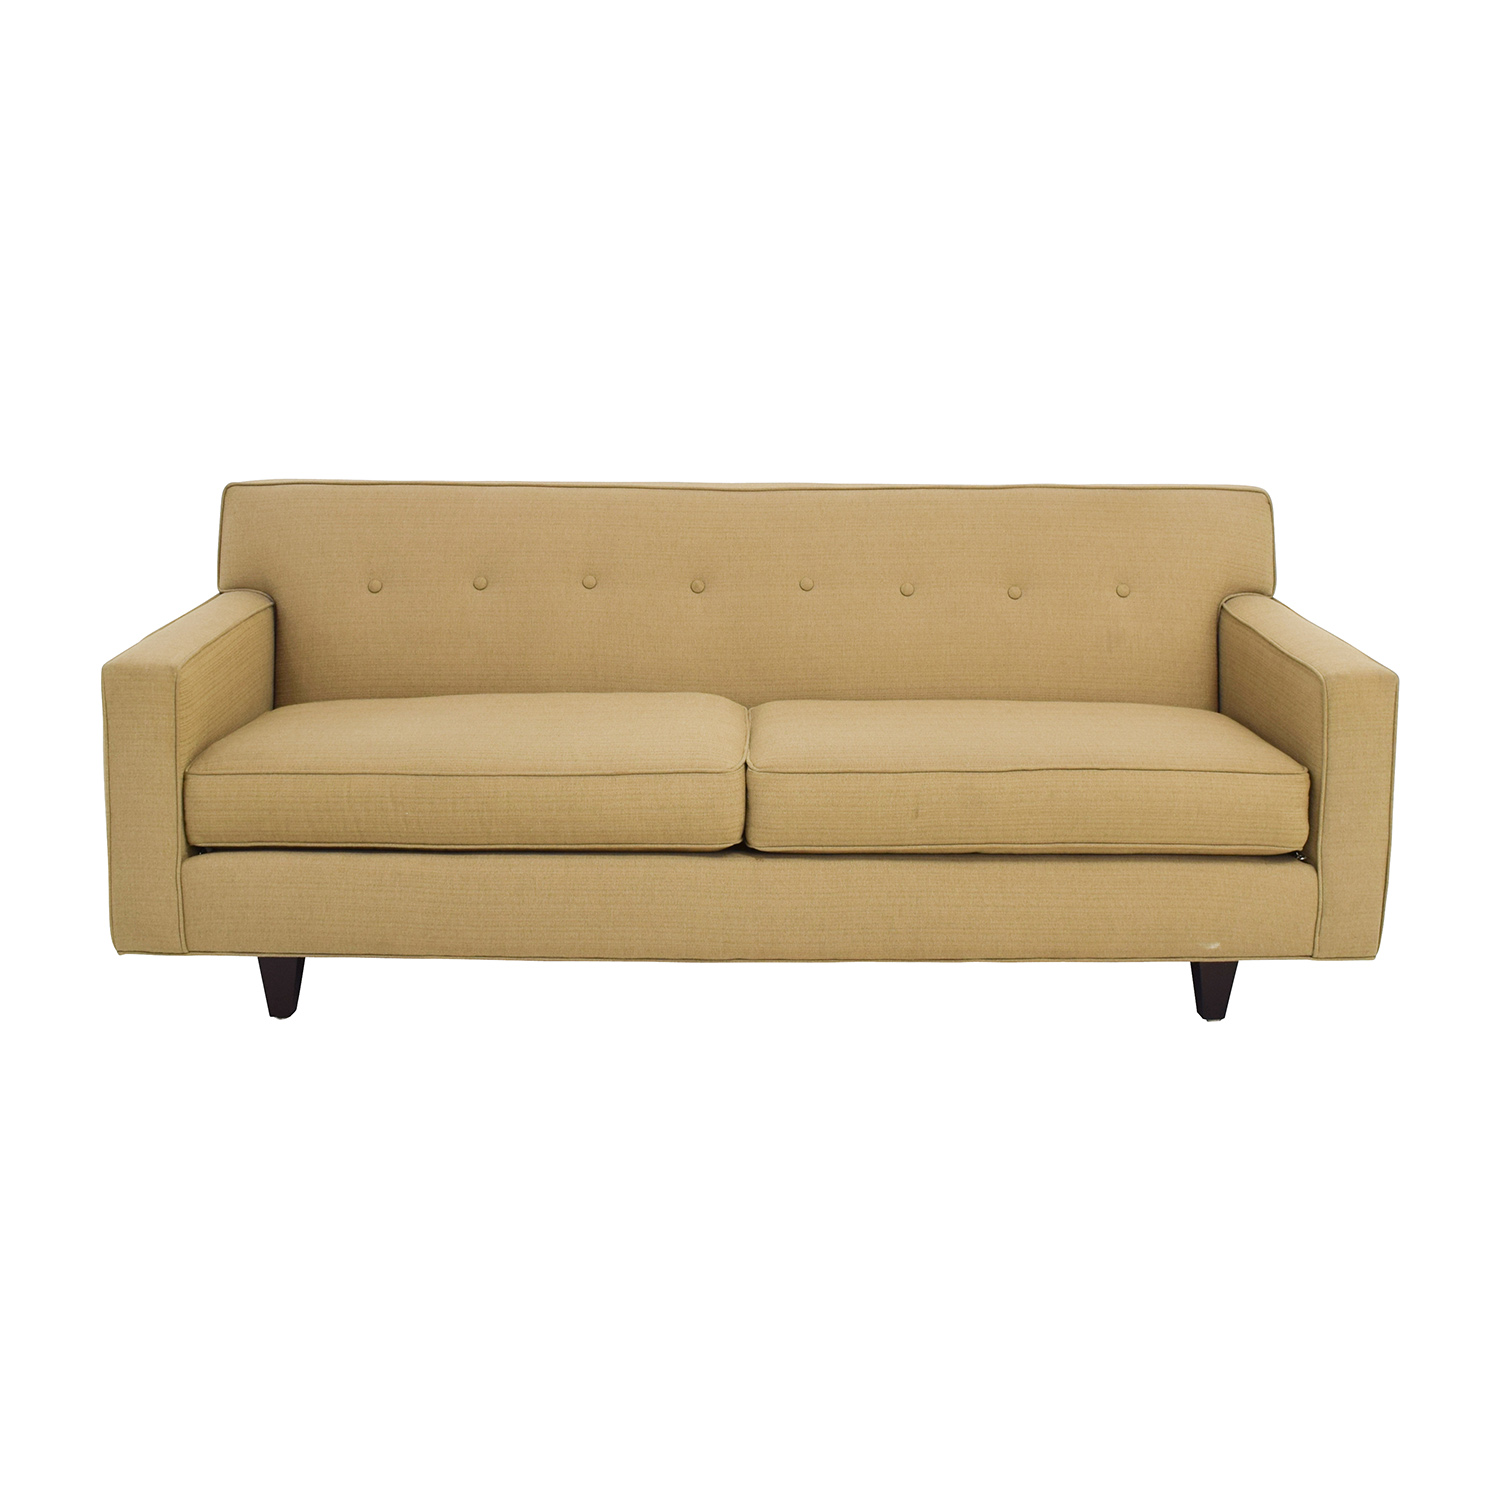 Rowe Furniture Rowe Furniture Contemporary Dorset Oatmeal Sofa on sale